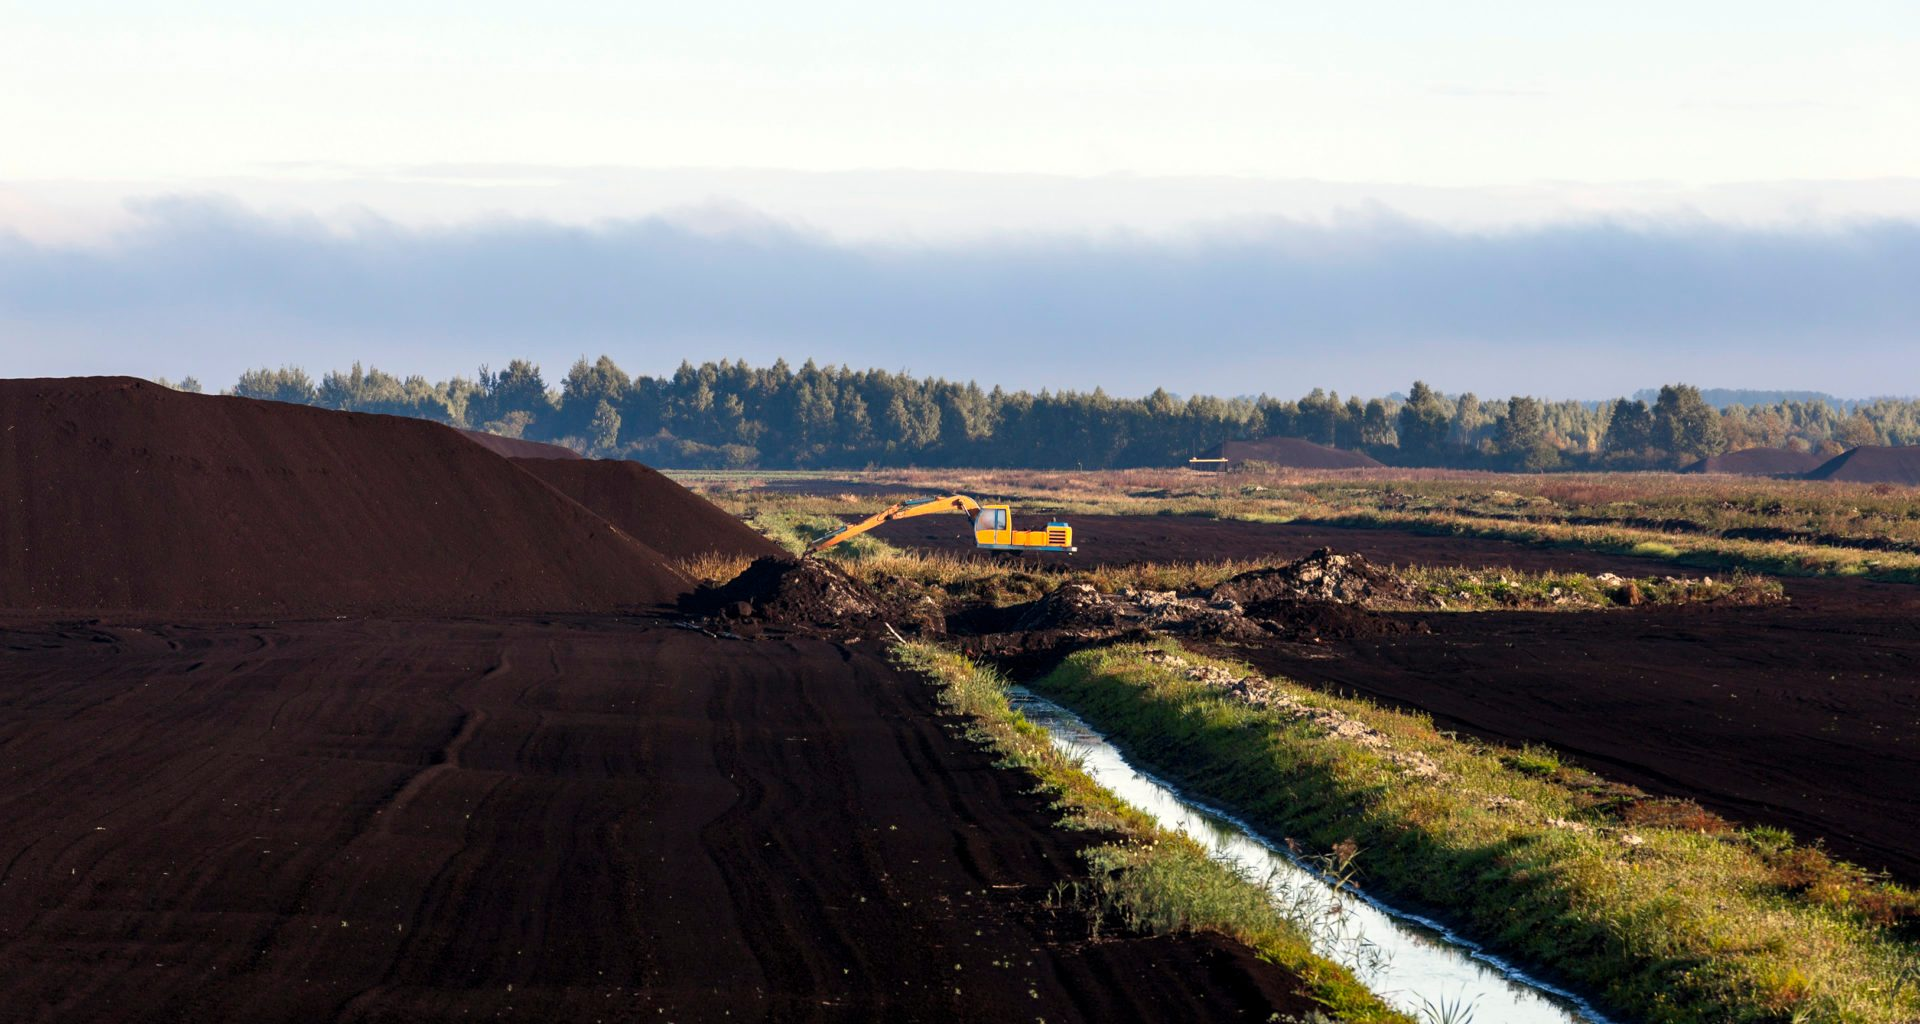 Commercial peat extraction